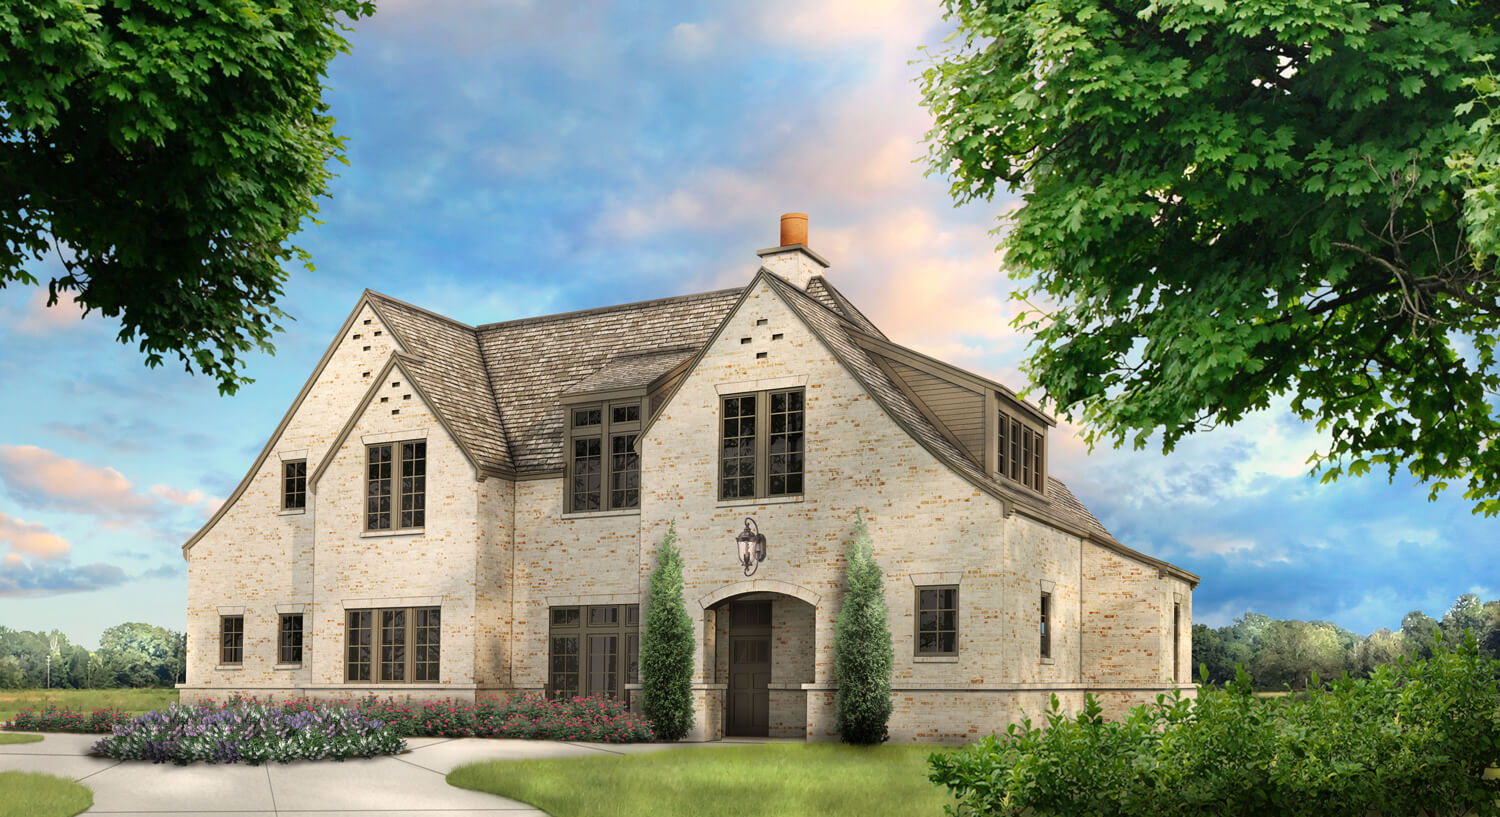 Designed by Foshee Architecture – Private Residence 1 Front Elevation